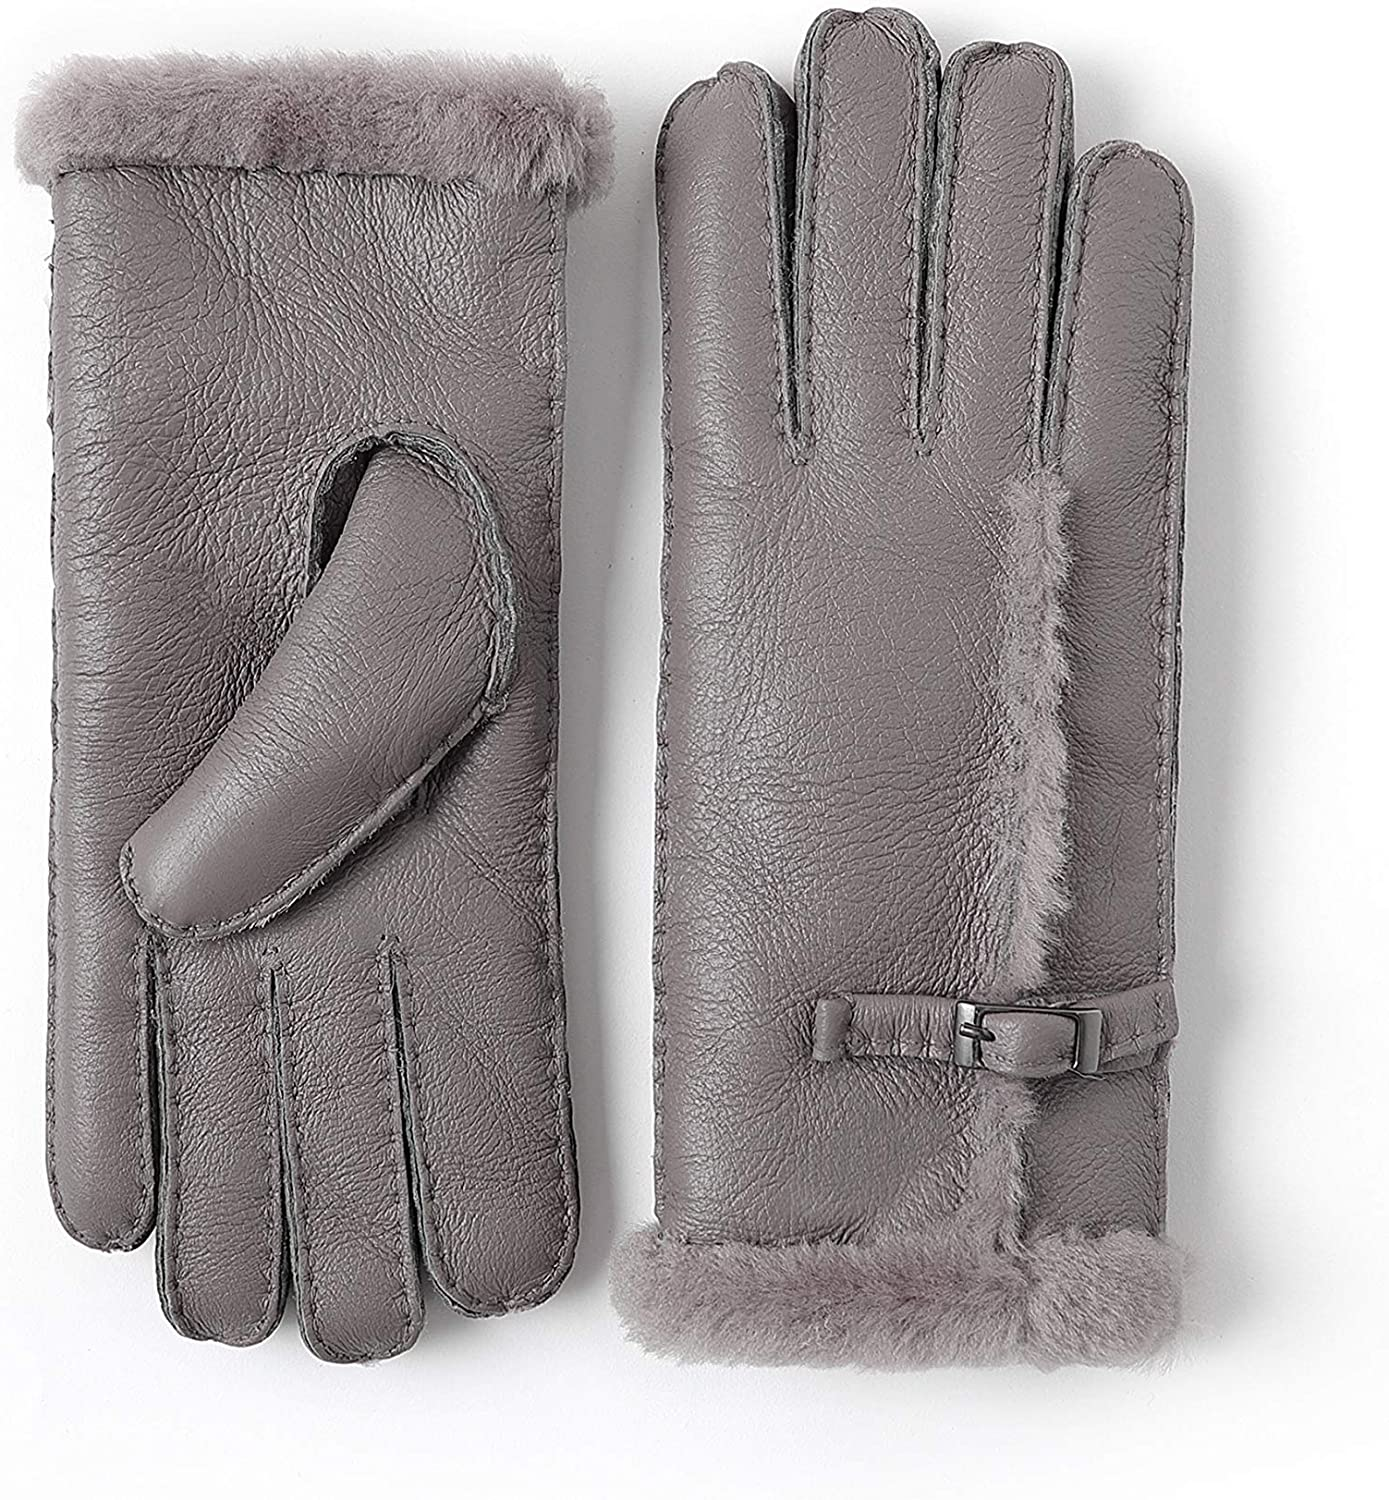 YISEVEN Womens Winter Sheepskin Shearling Leather Gloves Wool Lined Furry Cuffs Heated Sherpa Merino Thick Mittens Soft Warm Fur Lining for Cold Weather Driving Work Gifts, Gray Large